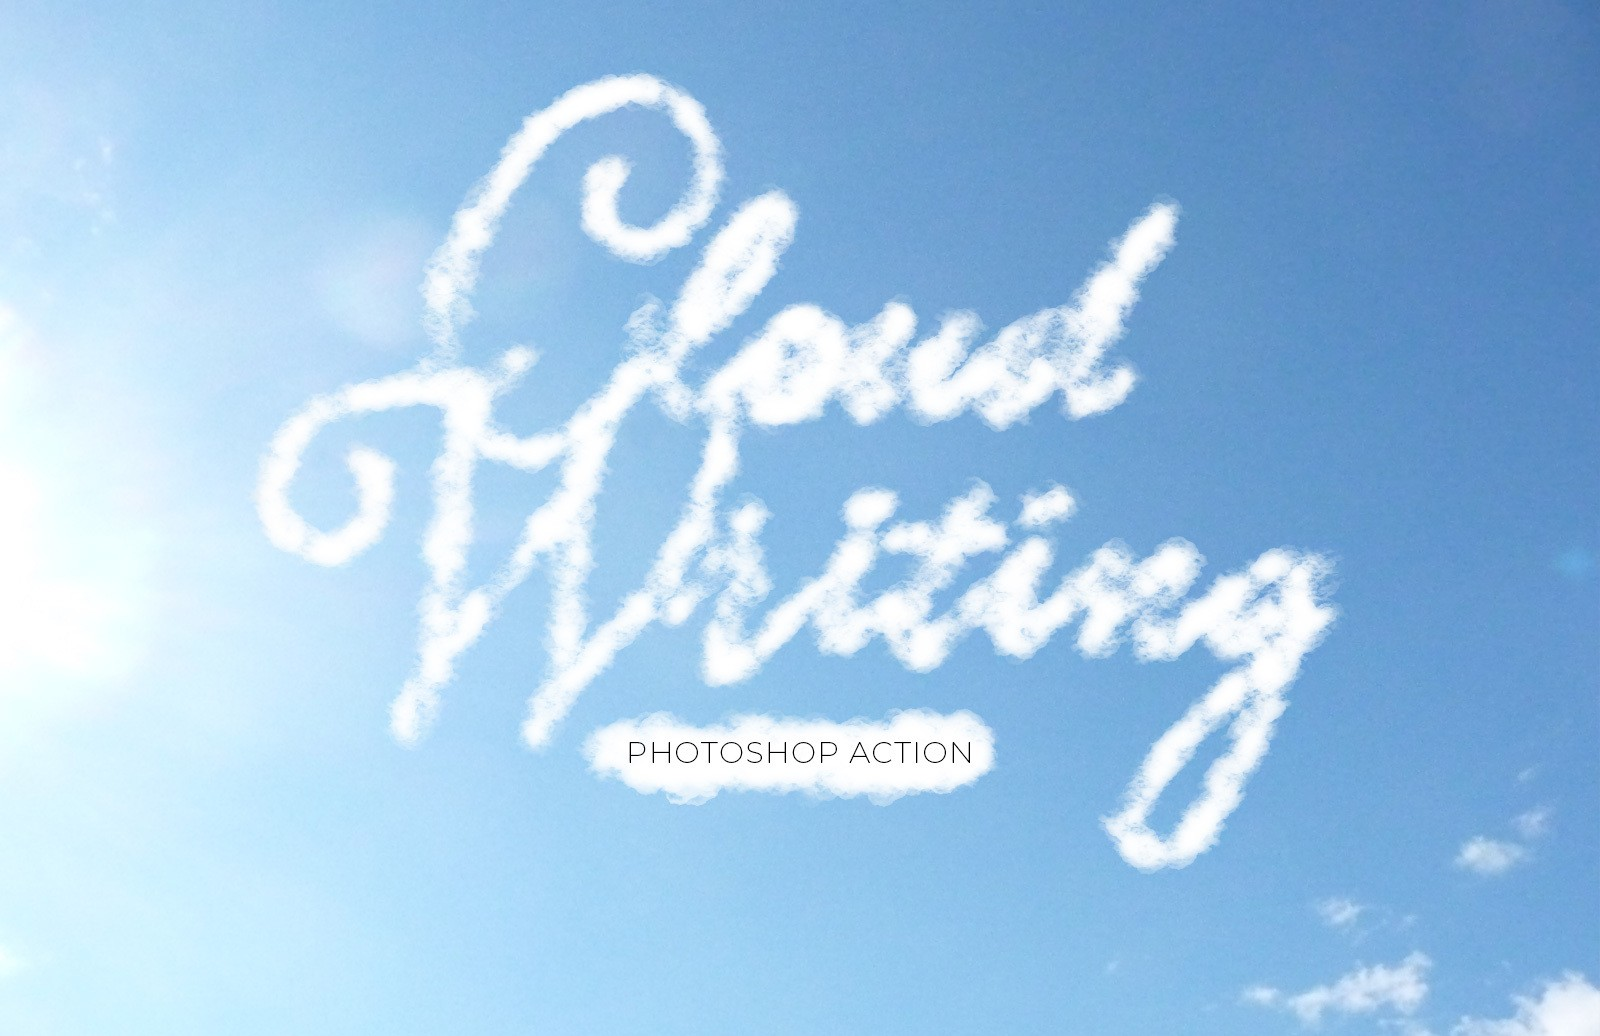 Cloud Writing Photoshop Action Preview 1B